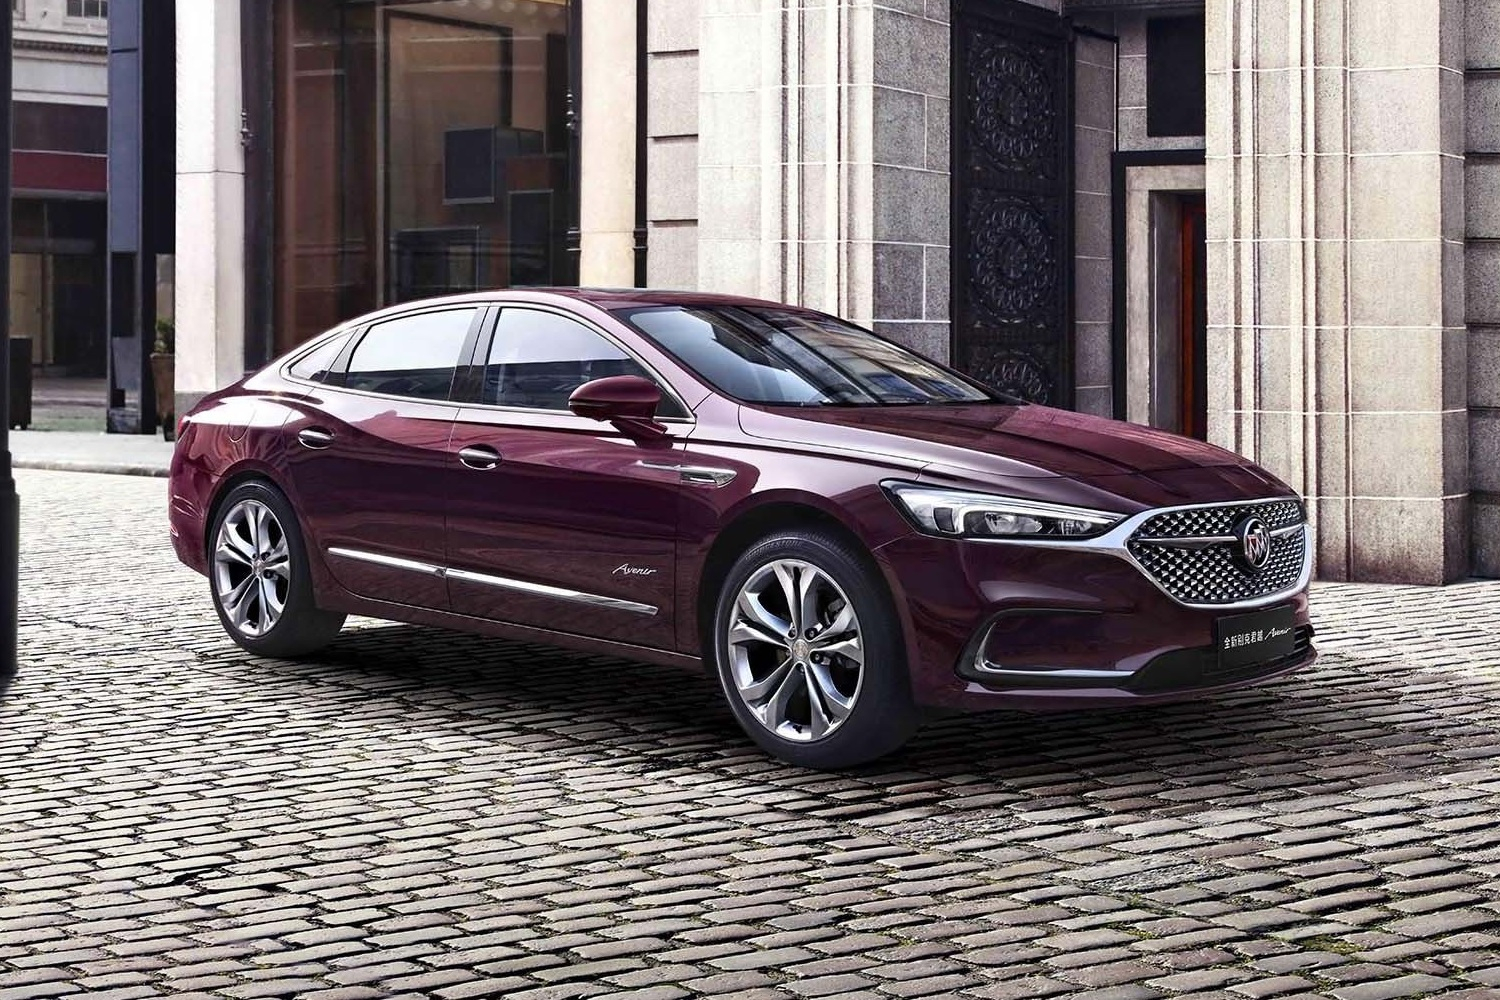 2020 Buick Lacrosse: Hot Or Not? | Gm Authority 2022 Buick Lacrosse Price, Interior, Specs